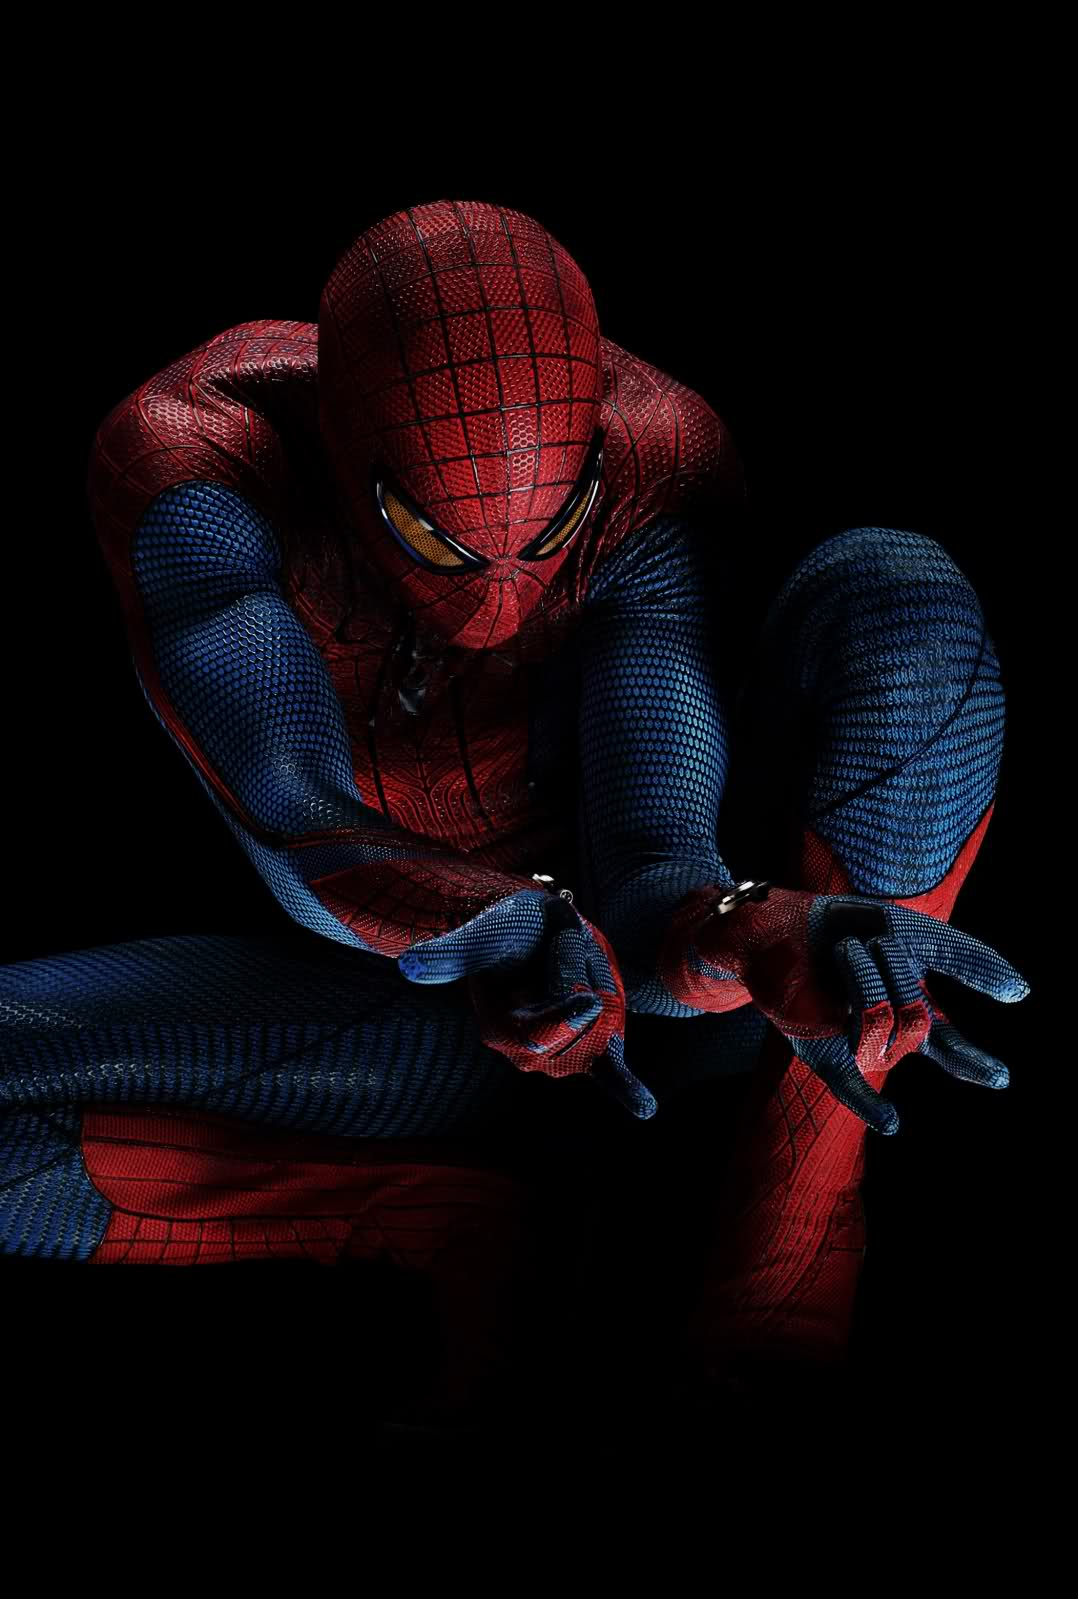 Amazing Spider-Man movie face of the fan contest